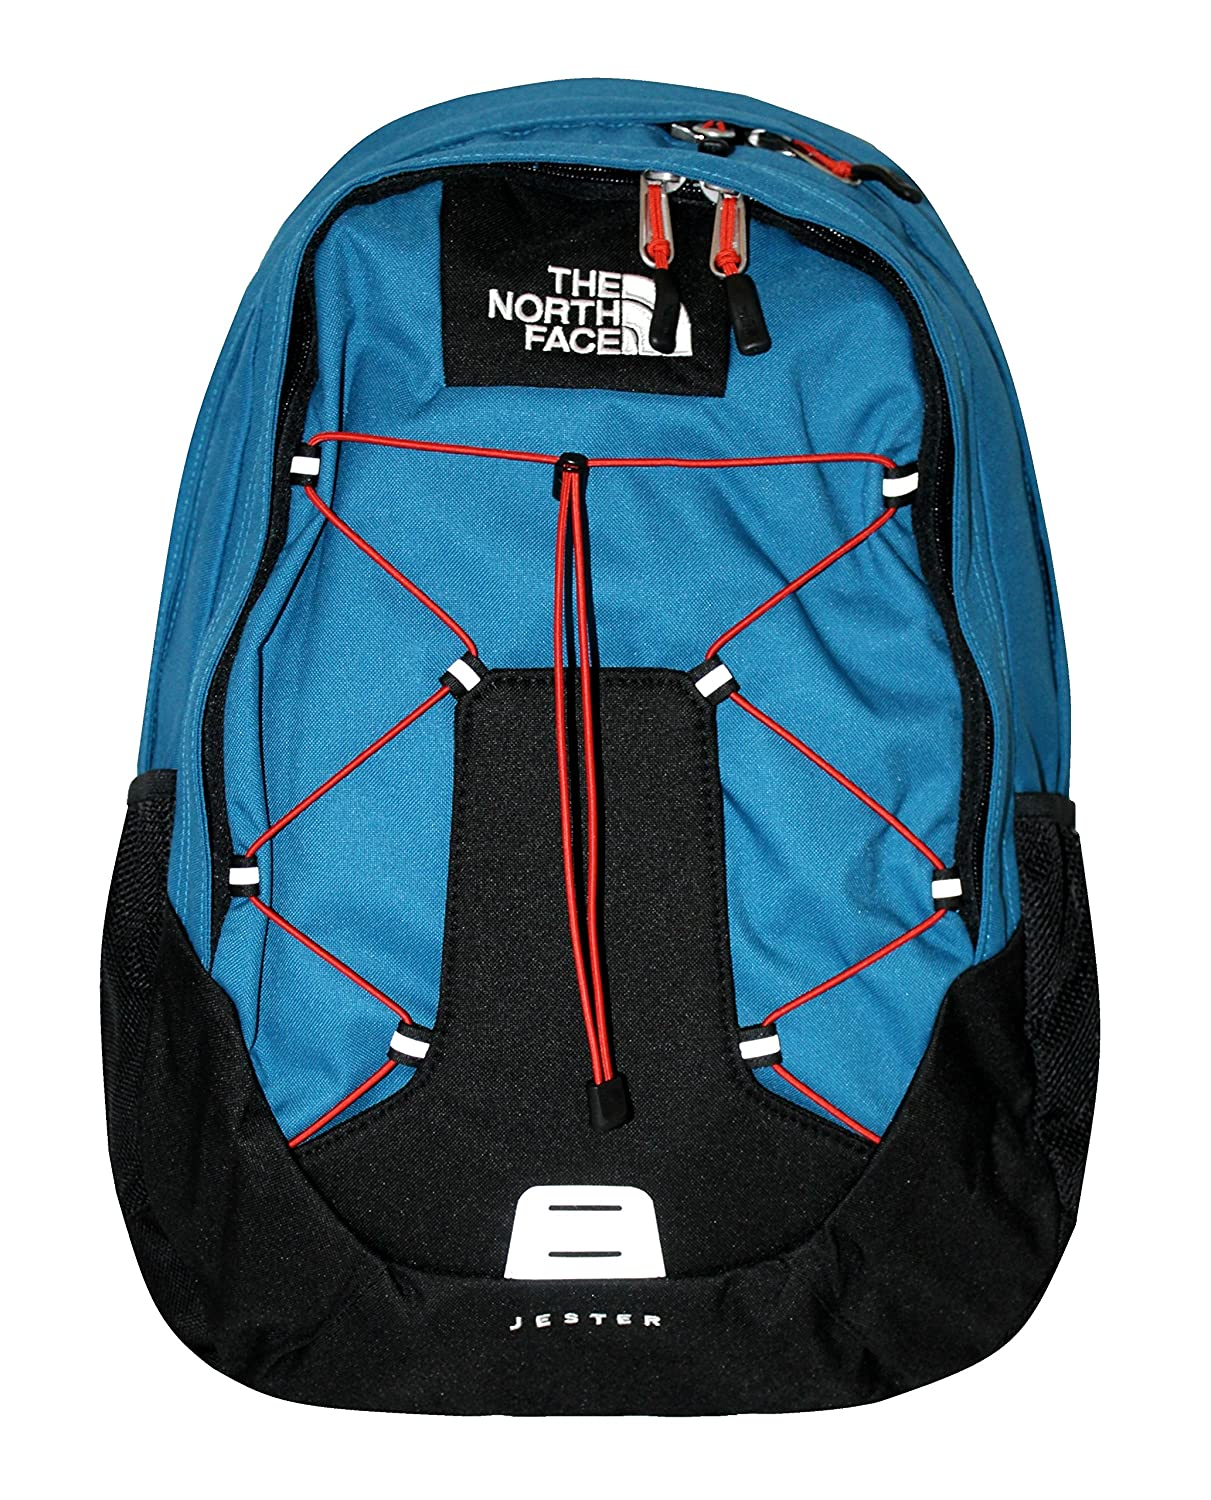 8c66ffbb7f1d Amazon.com  The North Face men s Jester laptop Backpack BANF BLUE  Clothing